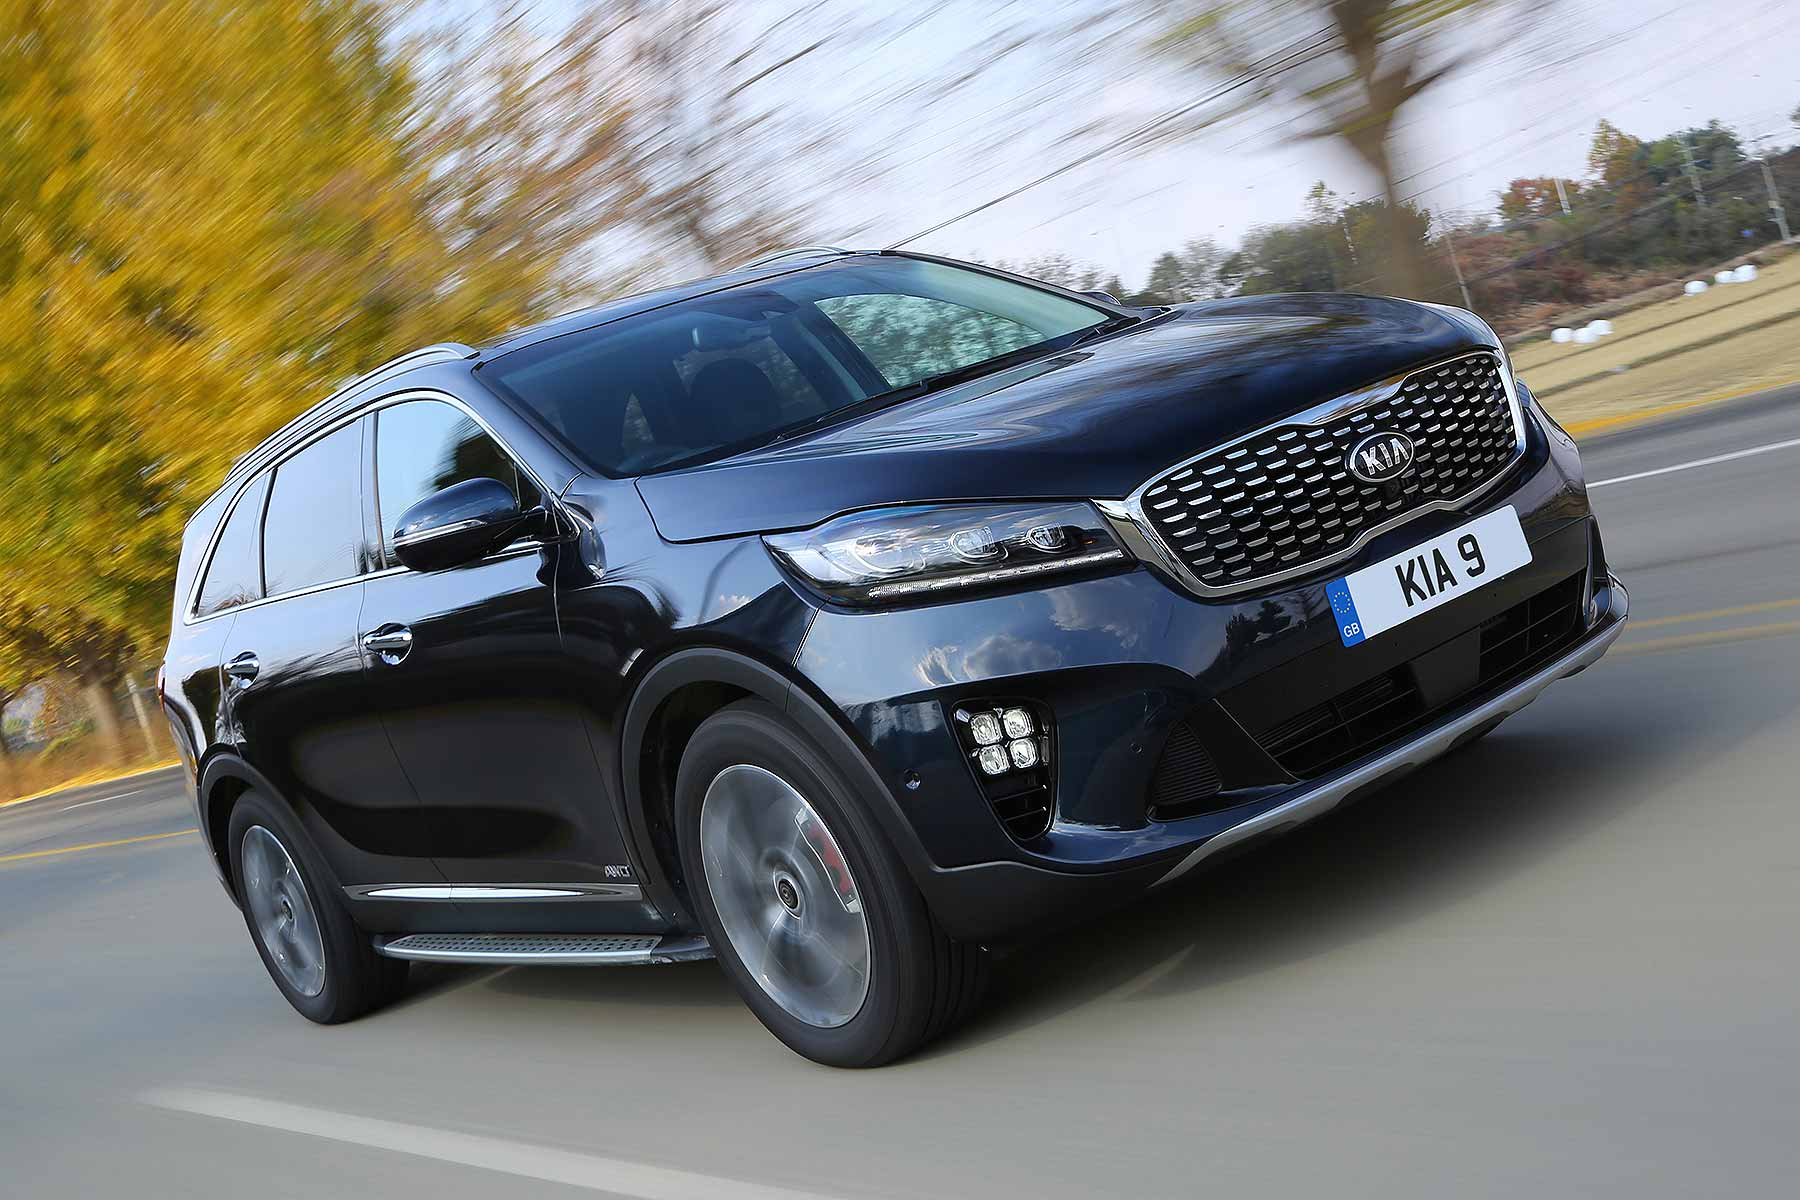 kia adds sporty gt line models to its sorento suv seven seater motoring research. Black Bedroom Furniture Sets. Home Design Ideas